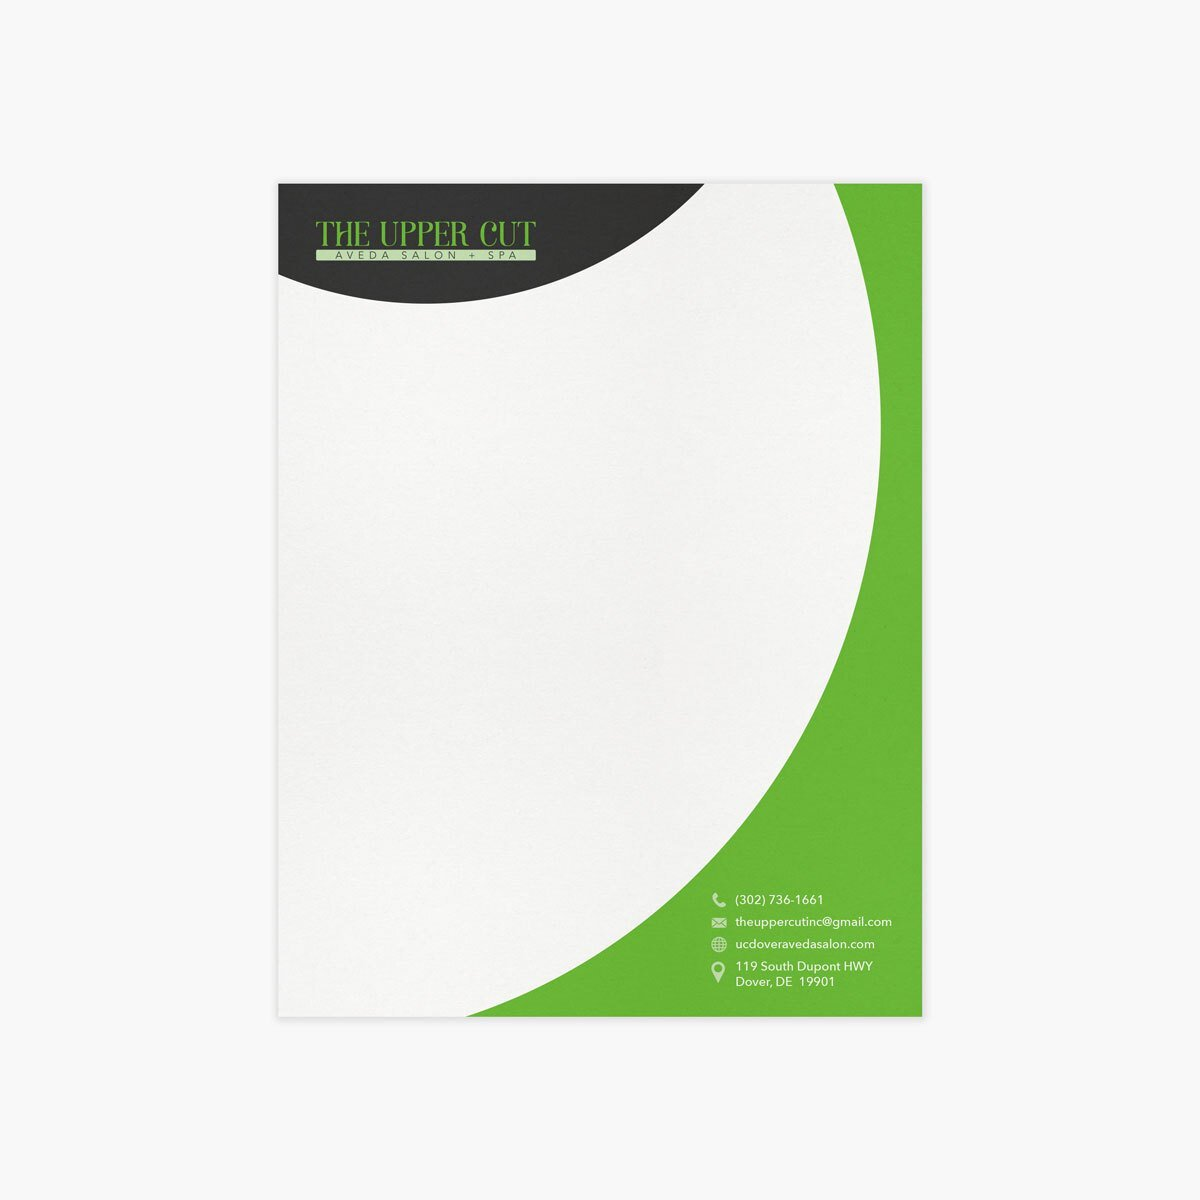 The Upper Cut Salon Letterhead Design by BrandSwan, a graphic design company